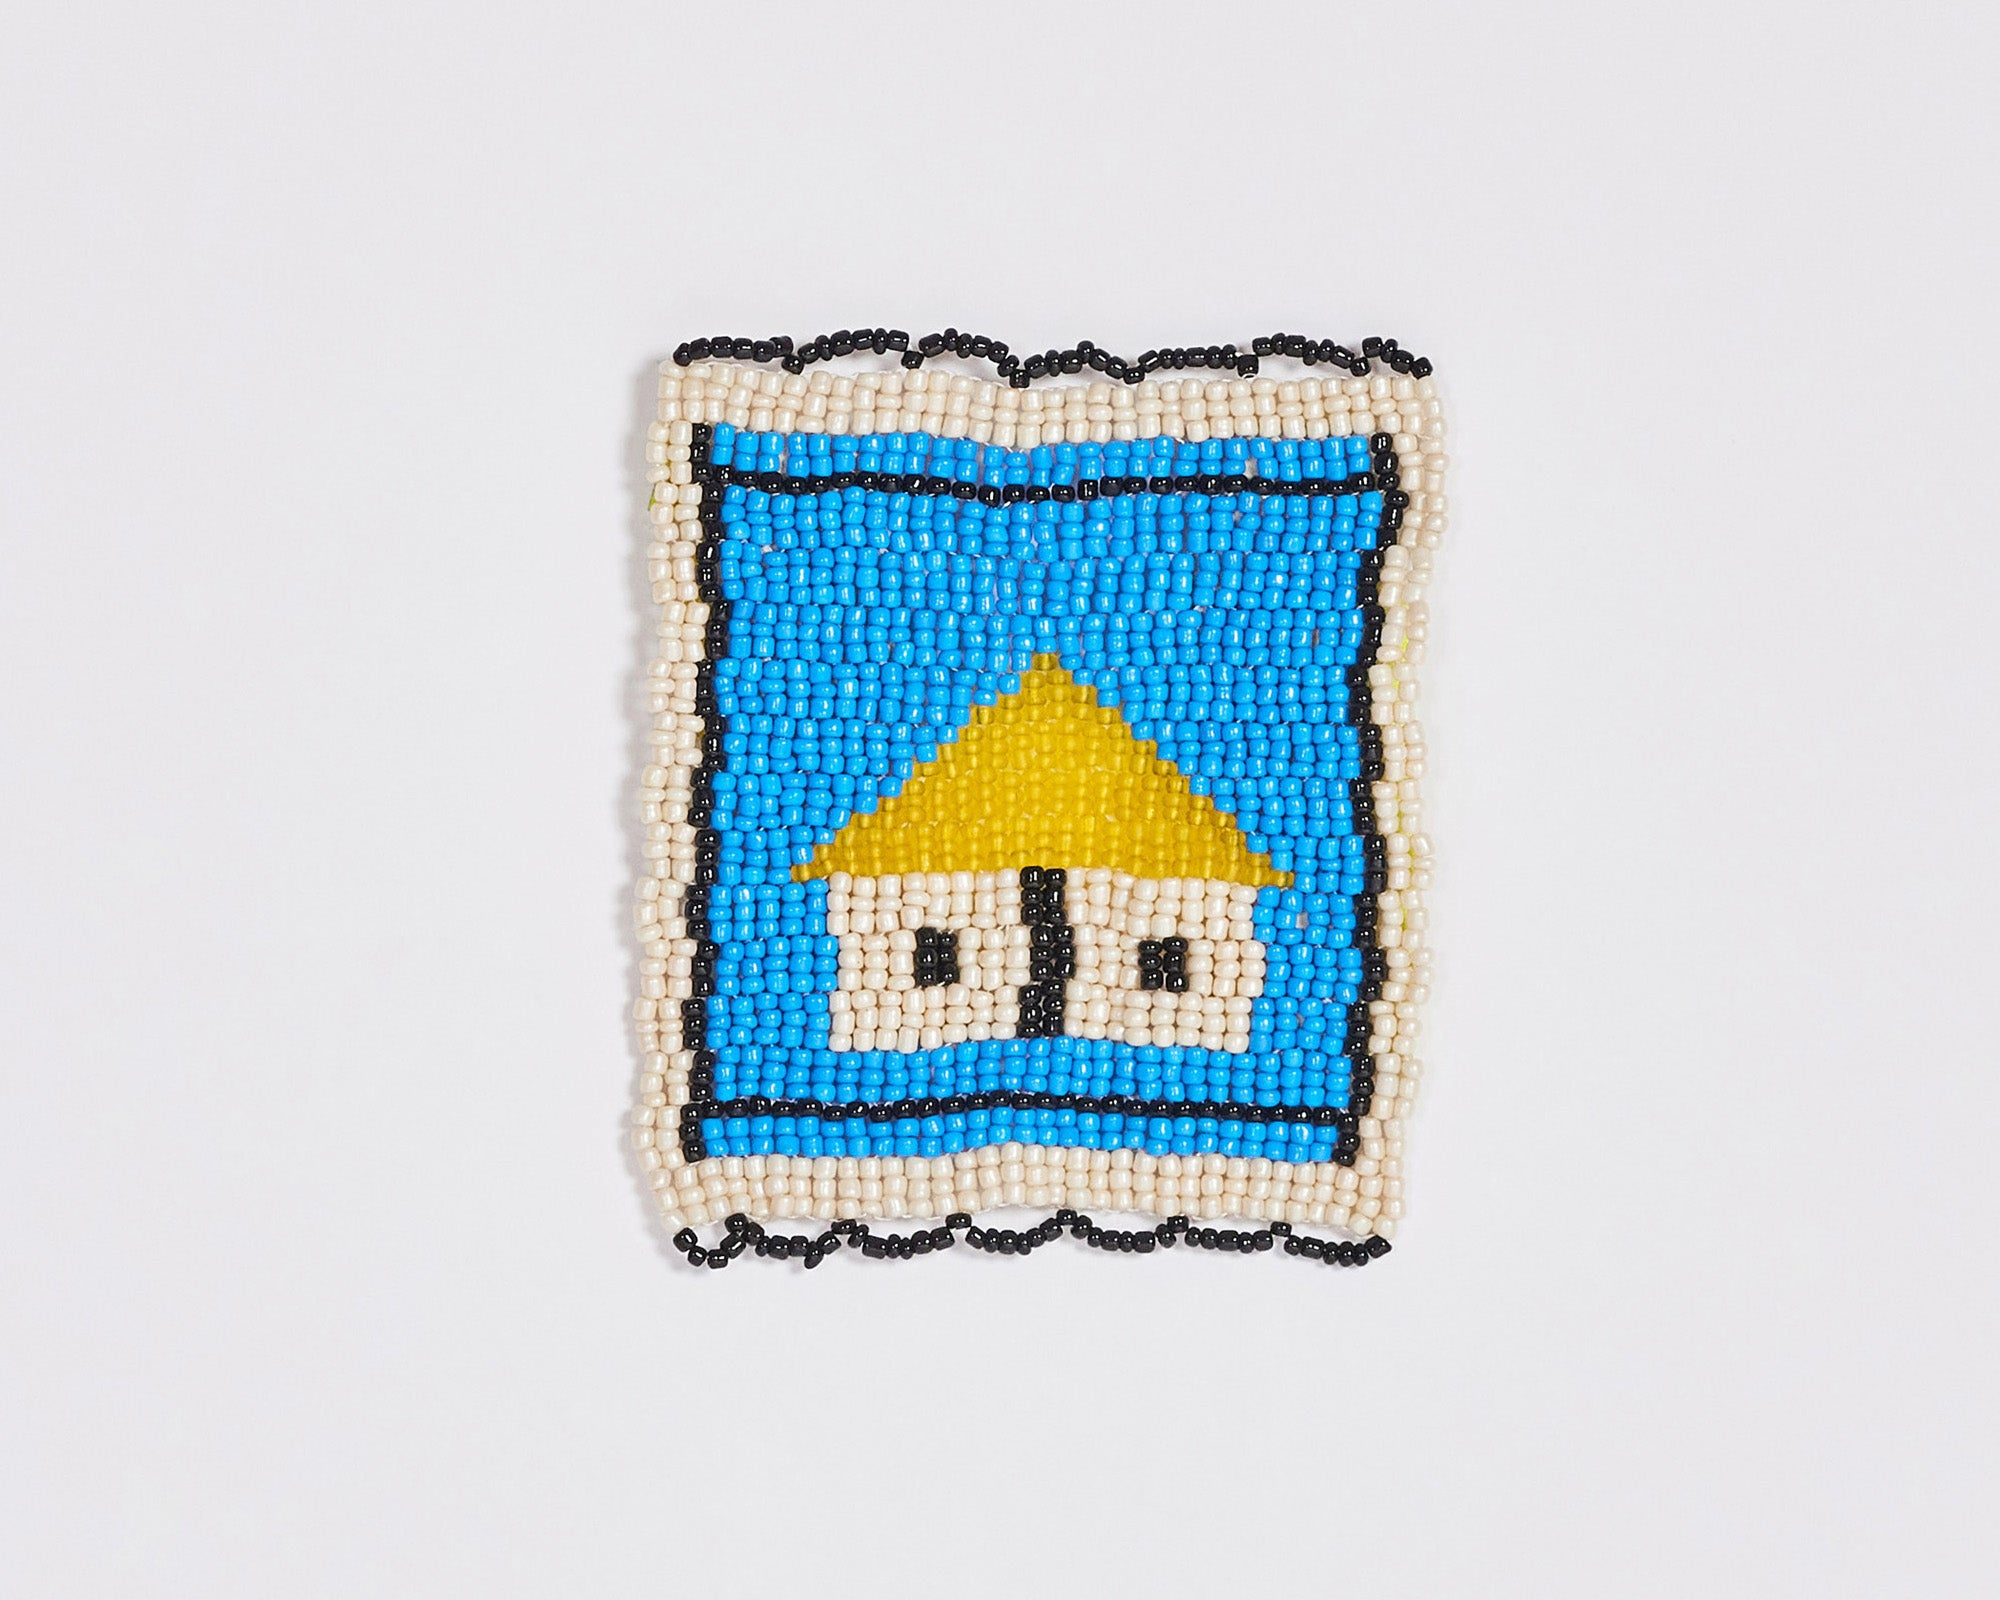 Beaded 'House' Coaster 010